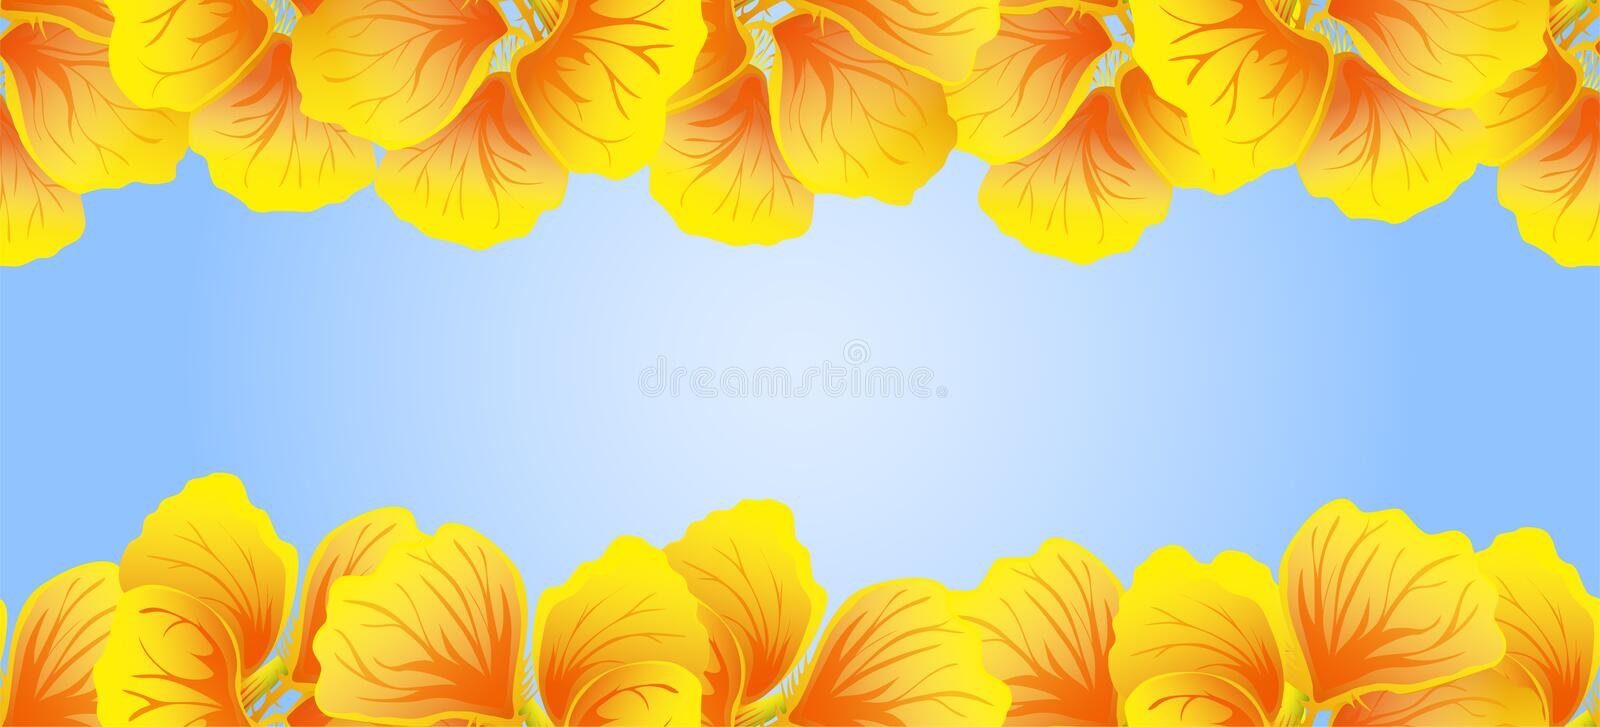 Bright Nasturtium Seamless border. Yellow flowers. Beautiful Horizontal banner. Blue background. Card, invitation, poster royalty free illustration